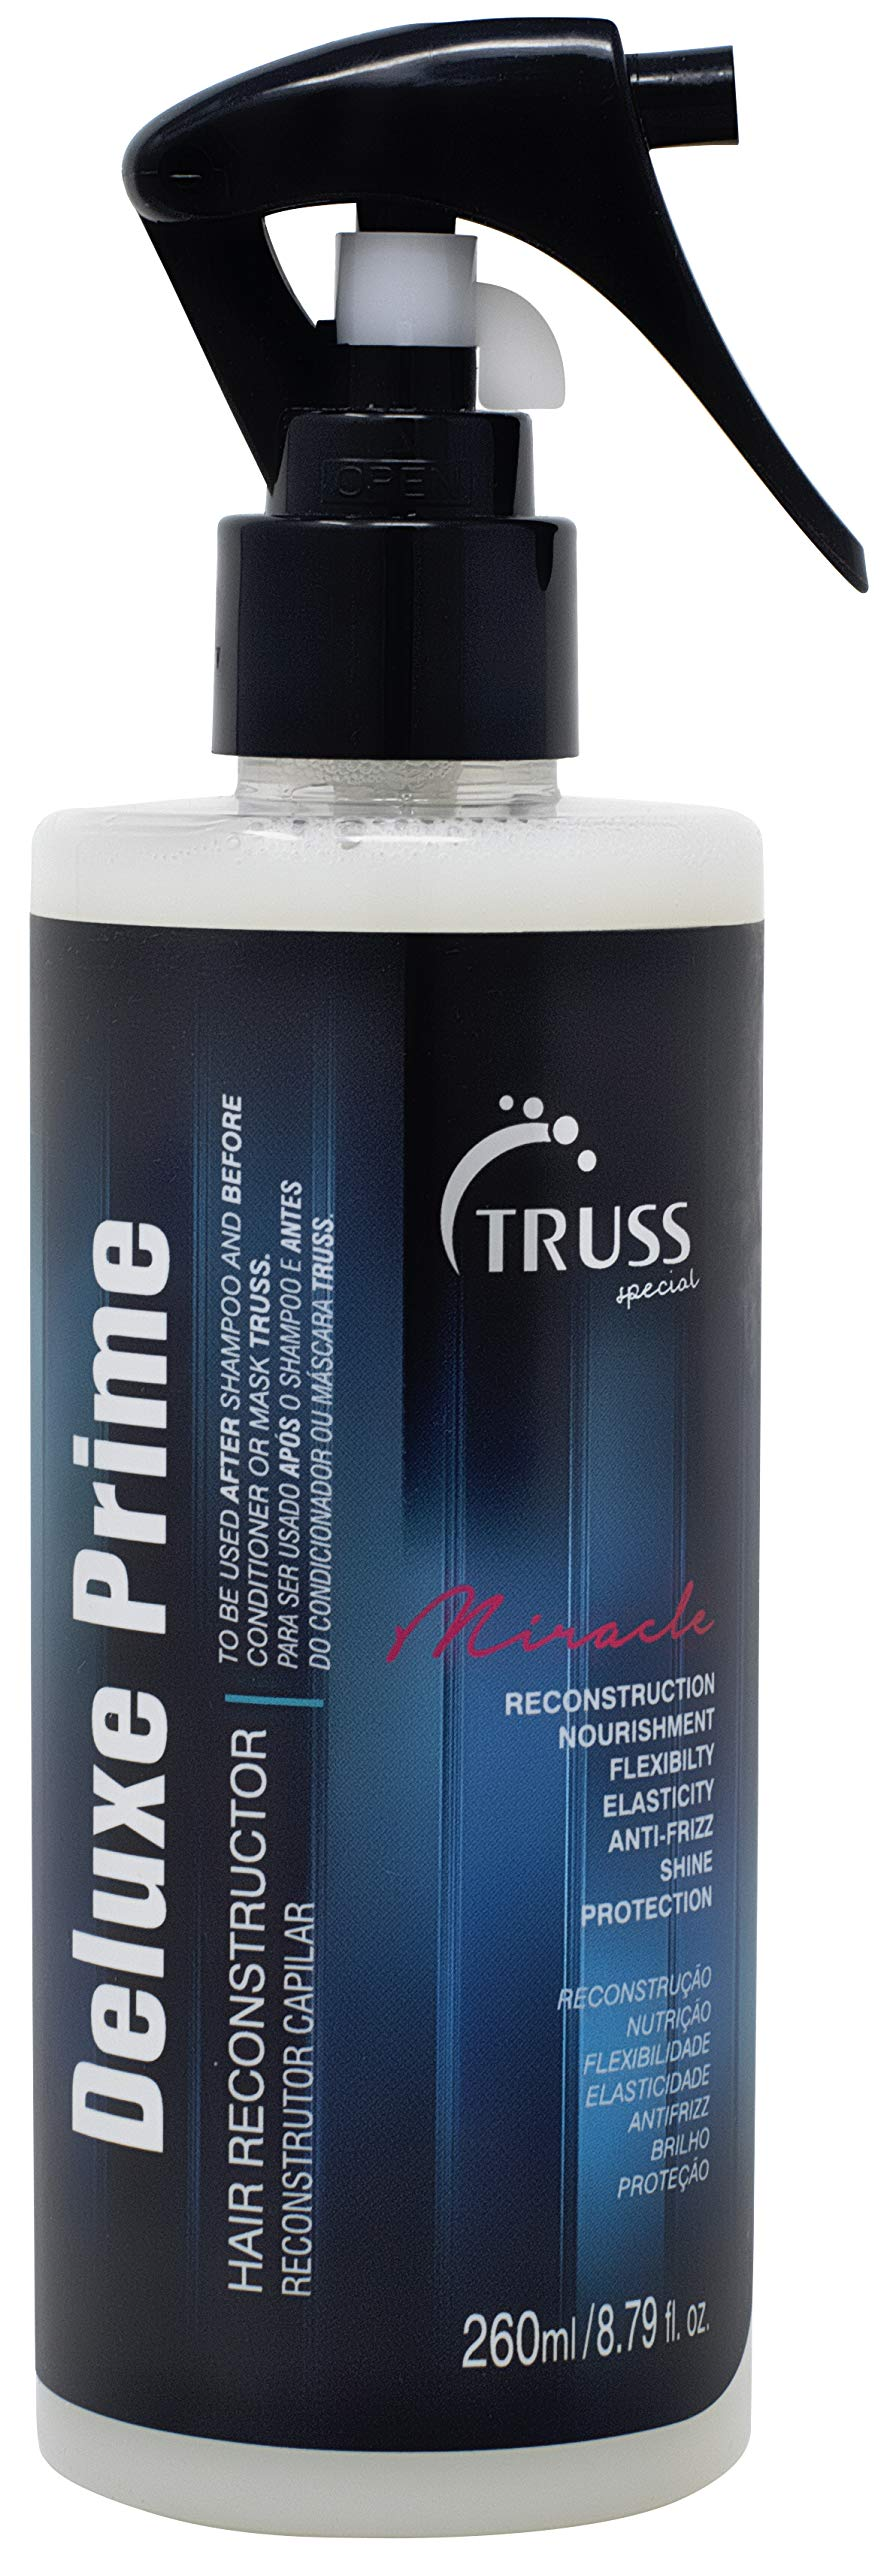 TRUSS Deluxe Prime Hair Treatment - Protein Infused Heat Protectant Spray - Leave In Conditioner,